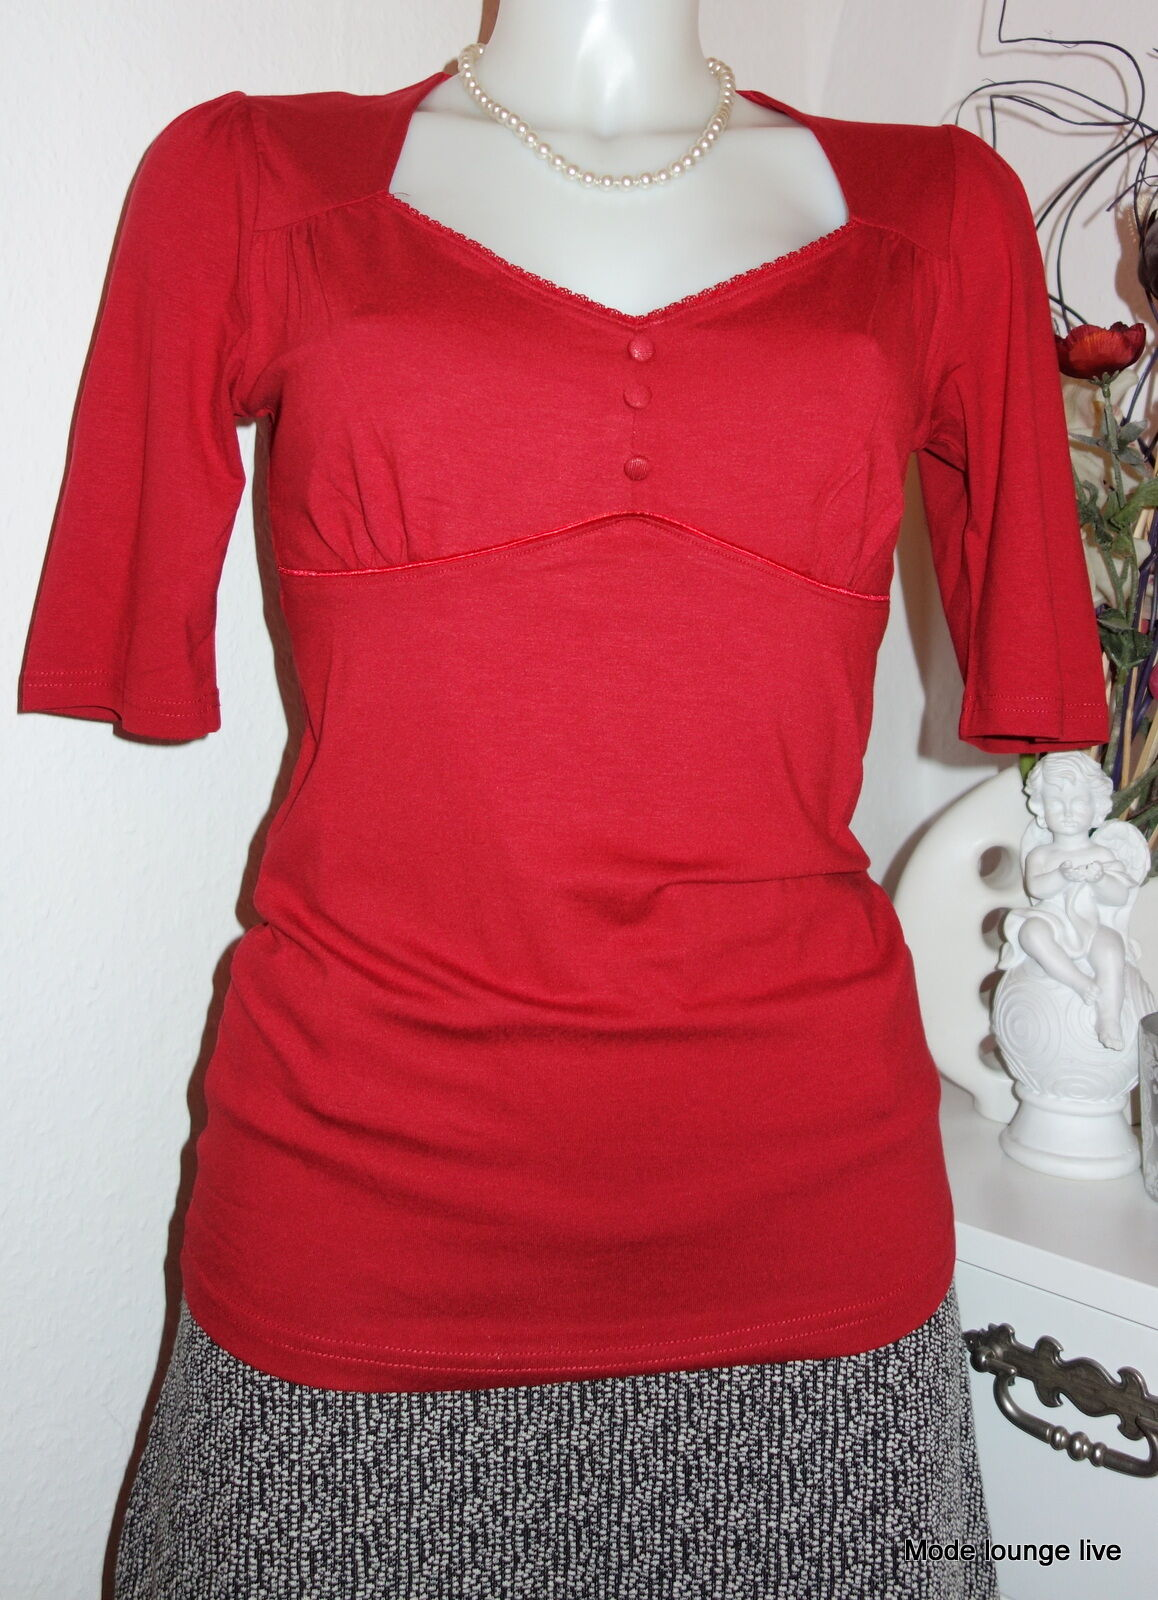 Vive Maria HOLIDAY IN SHIRT SHIRT SHIRT rosso pizzo camicetta BOTTONI M 38 BASE 30767 9dc88d